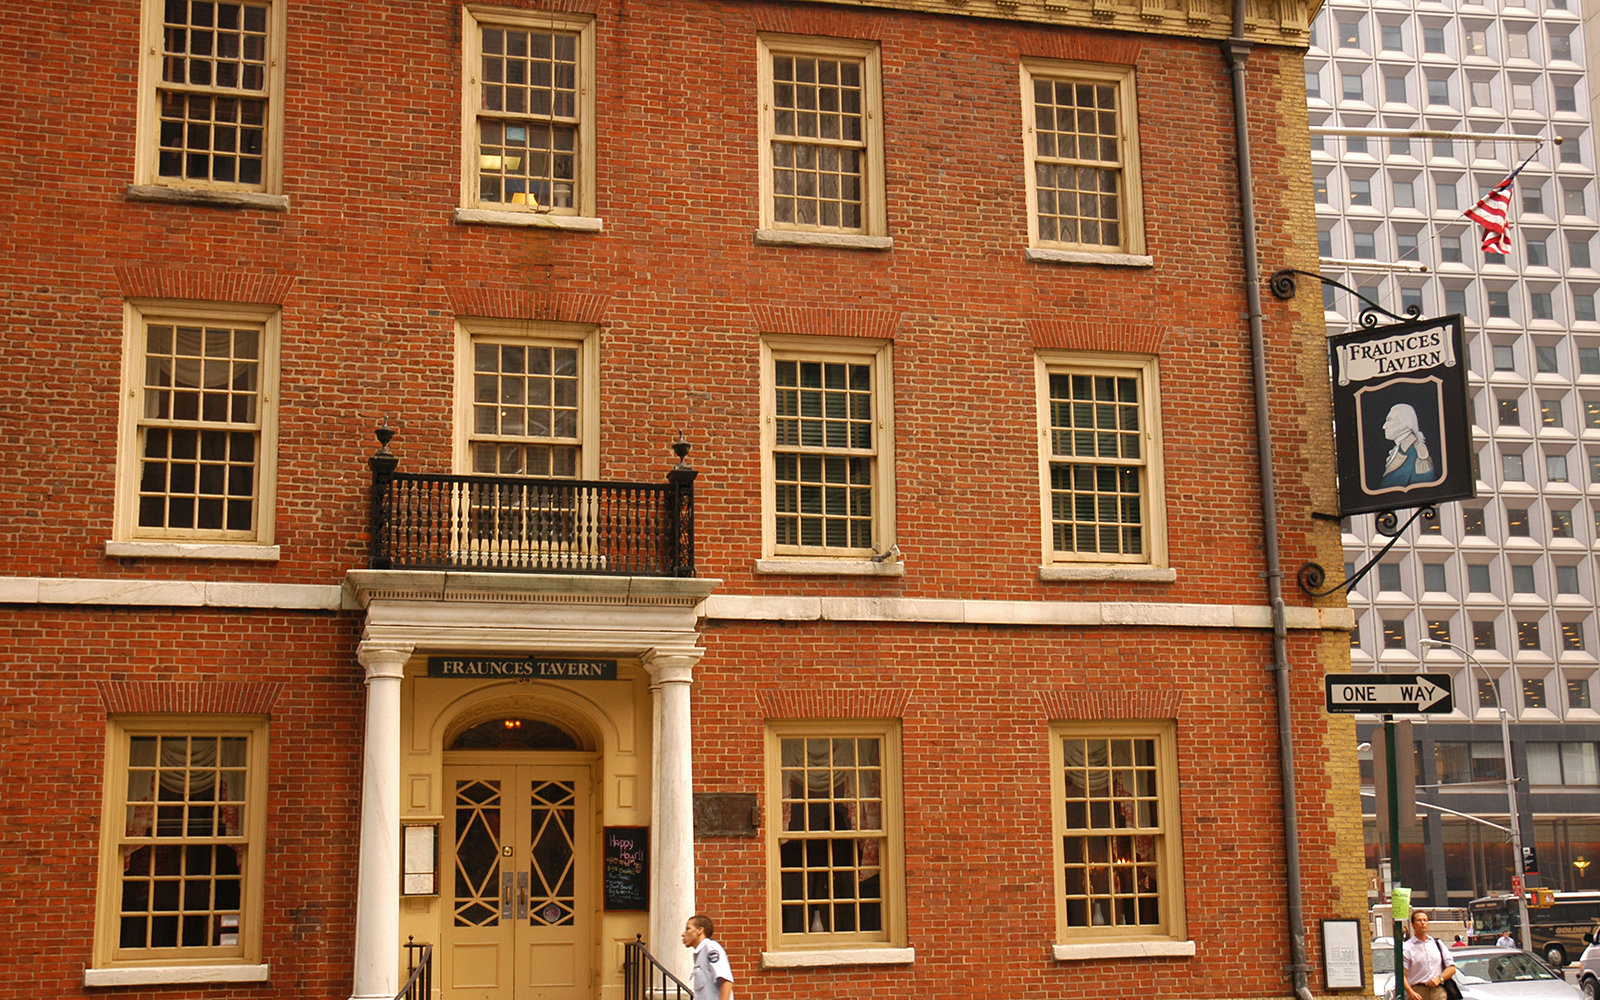 AWDR2J Fraunces Tavern Financial District Manhattan New York USA